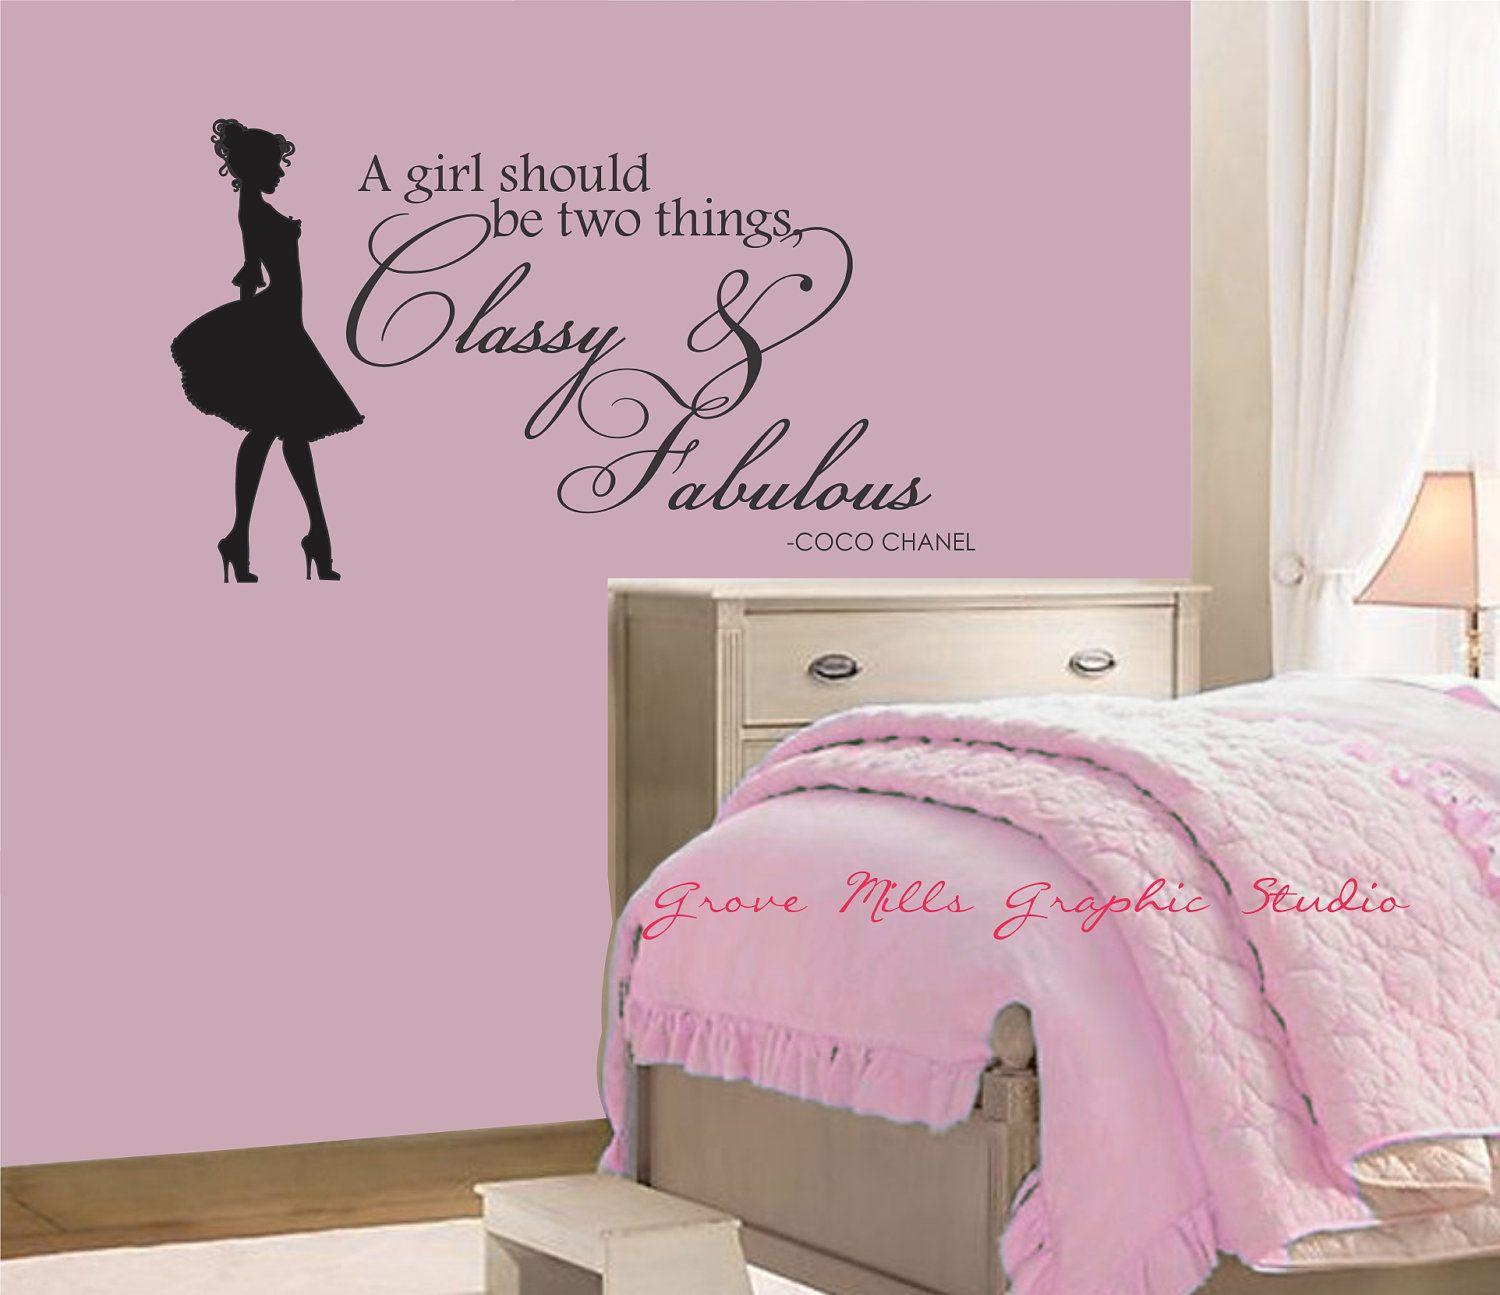 Charmant Classy And Fabulous Wall Decal   Coco Chanel Wall Quote   Girls Room Wall  Decal   Girls Room Wall Art   Girl Wall Decor